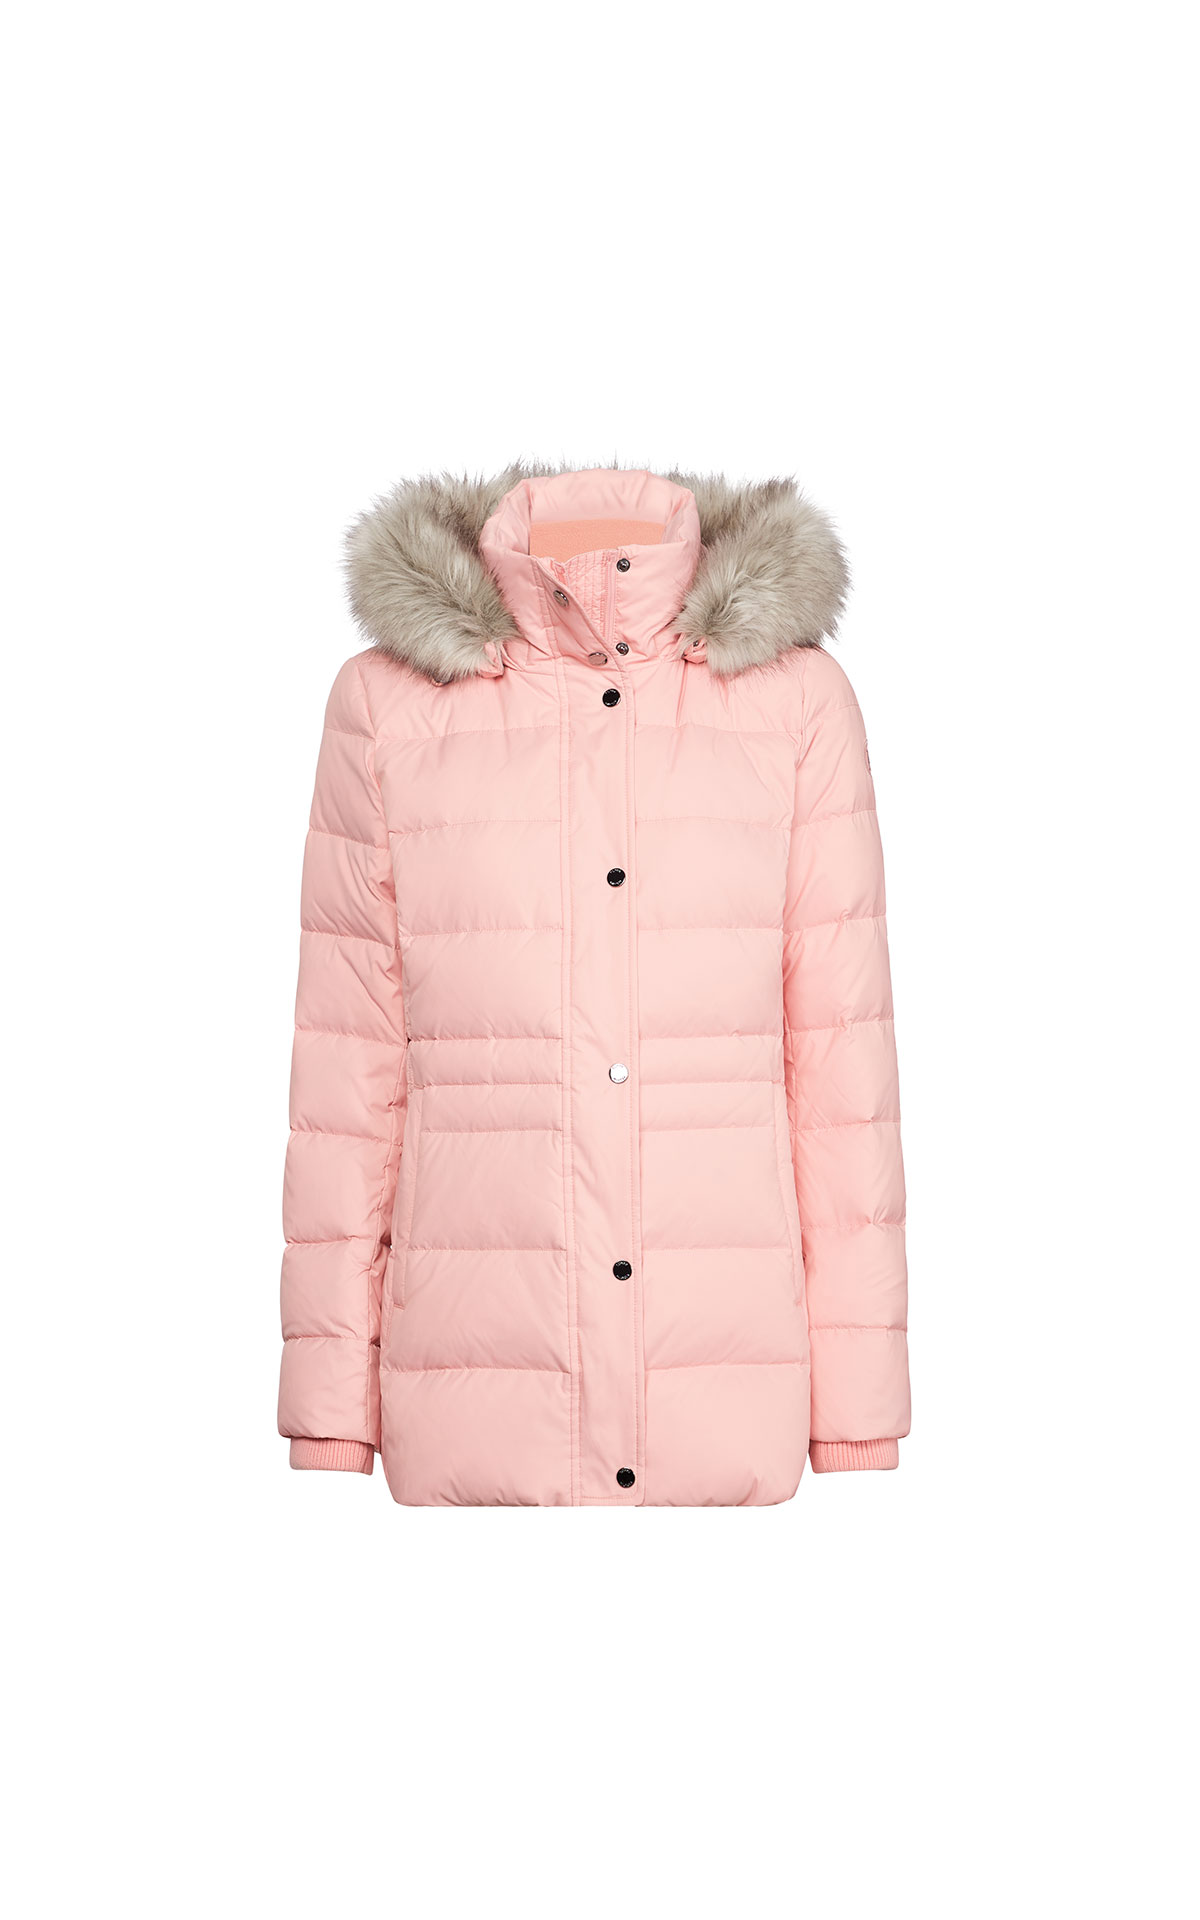 Tommy Hilfiger Womens tyra down jacket at The Bicester Village Shopping Collection